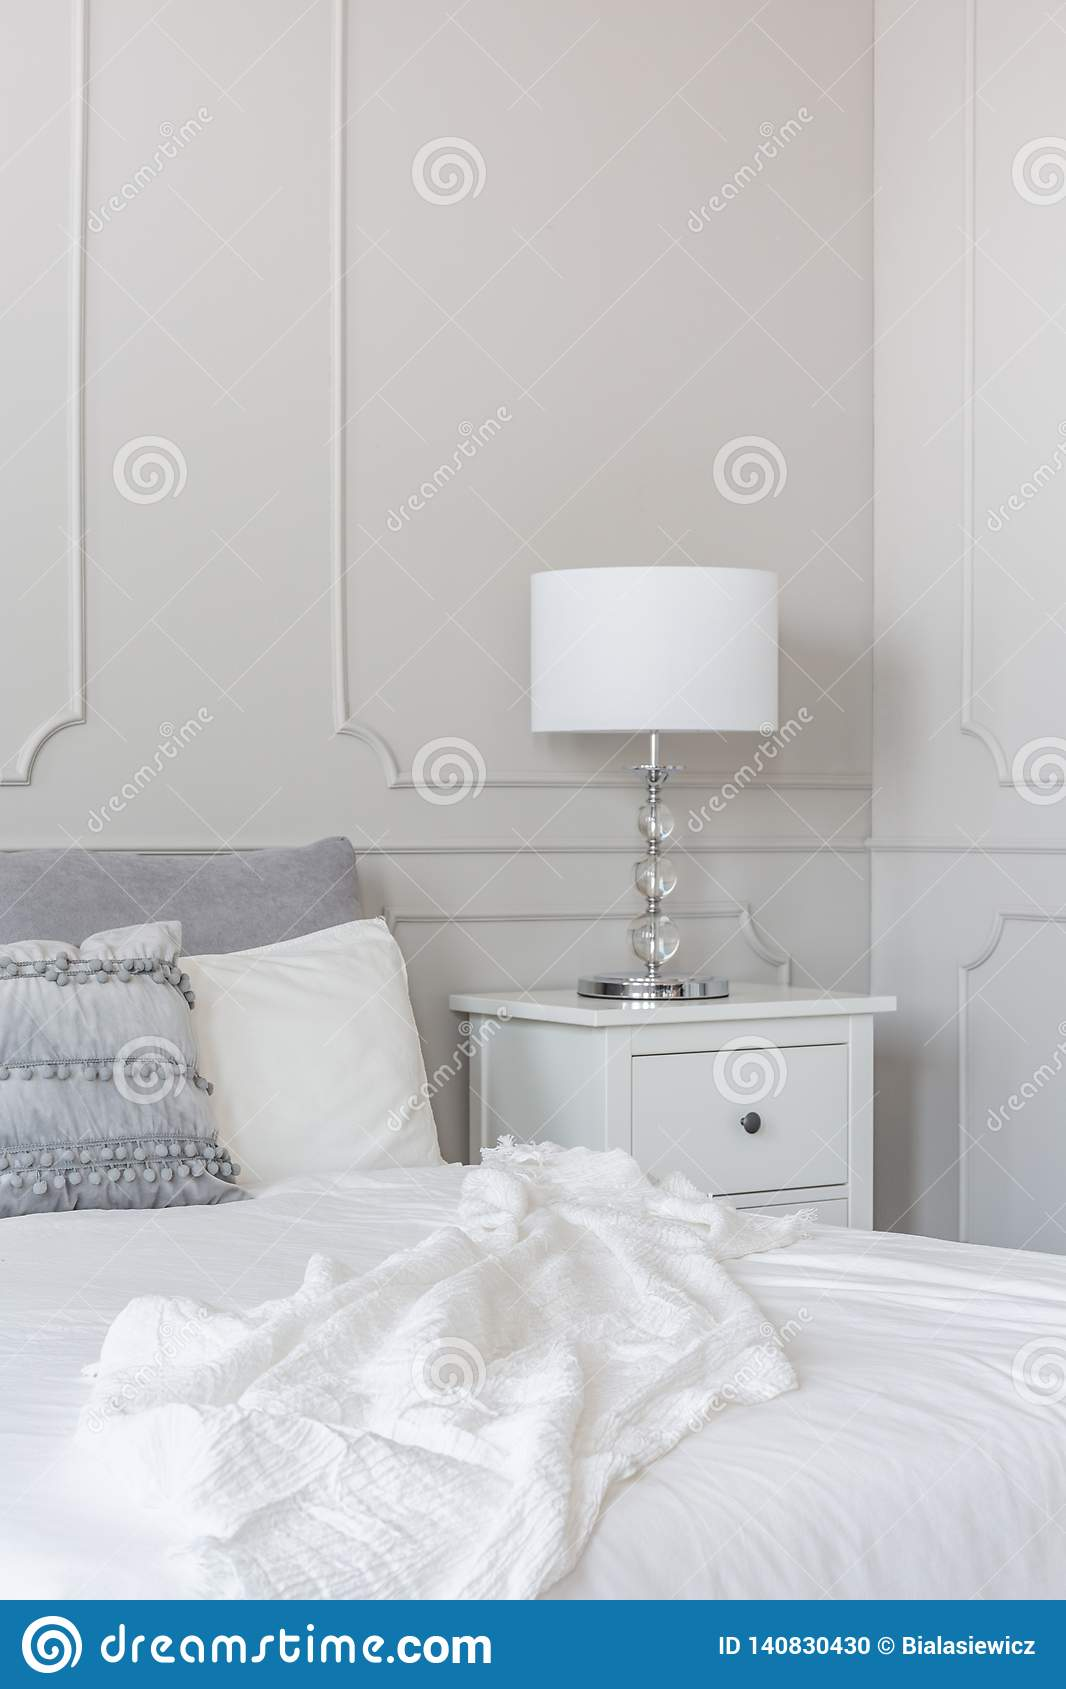 White Lamp On Wooden Nightstand Next To King Size Bed Copy